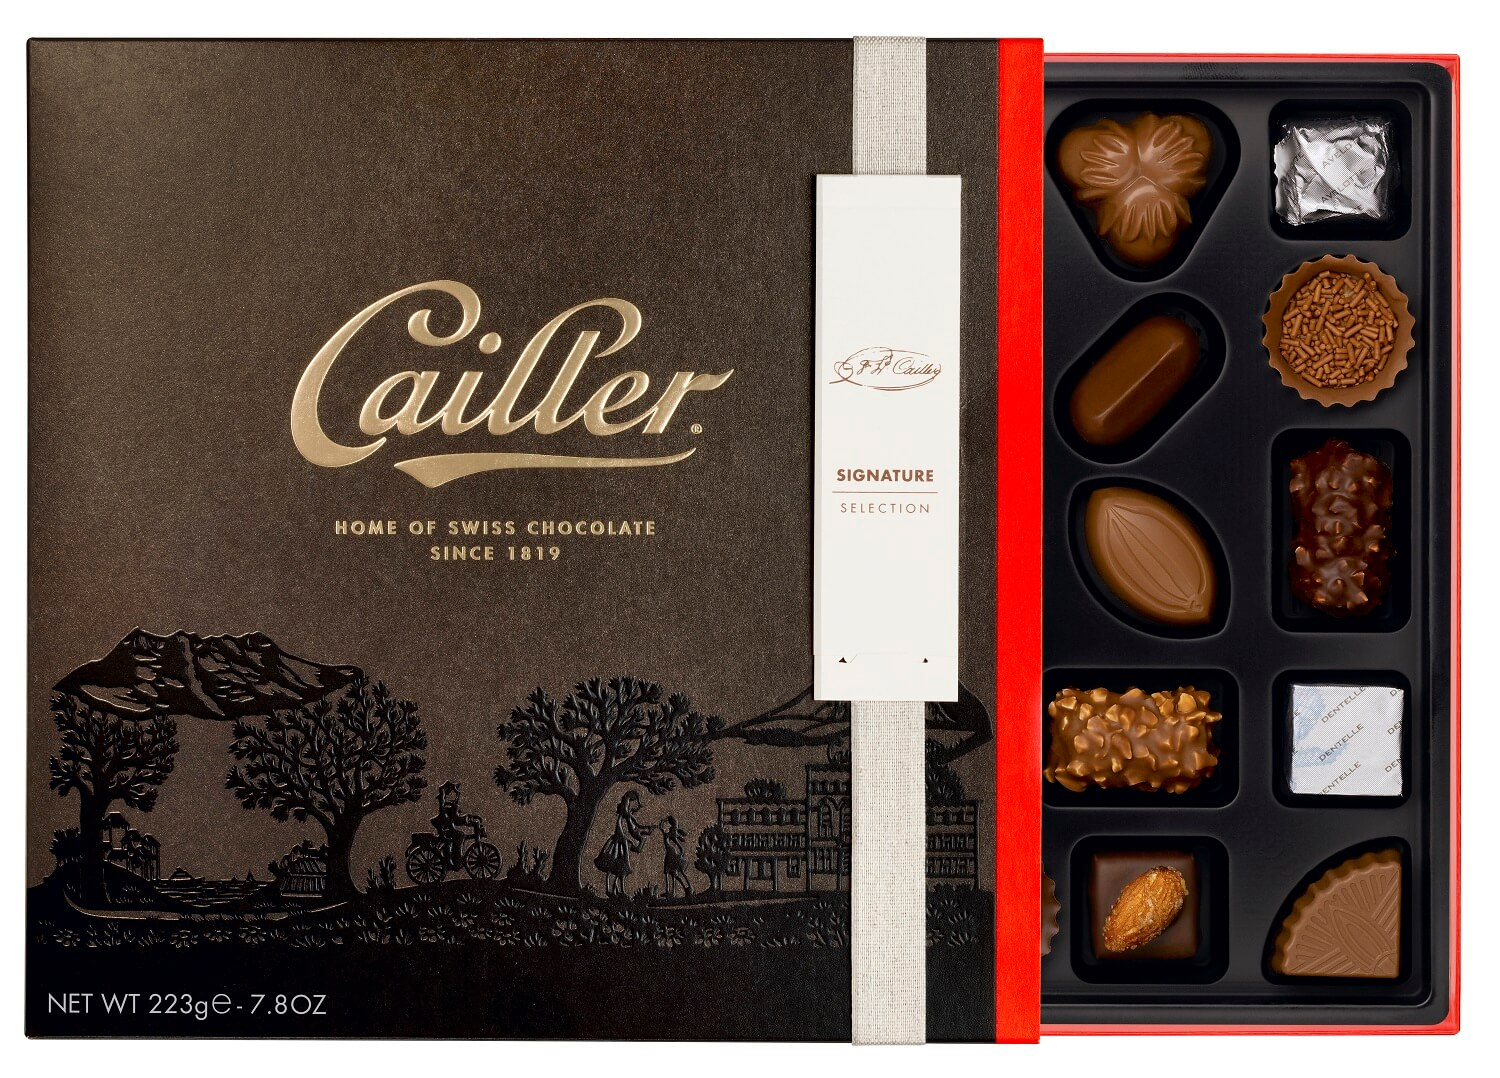 Nestlé's First Super-Premium Chocolate: Maison Cailler